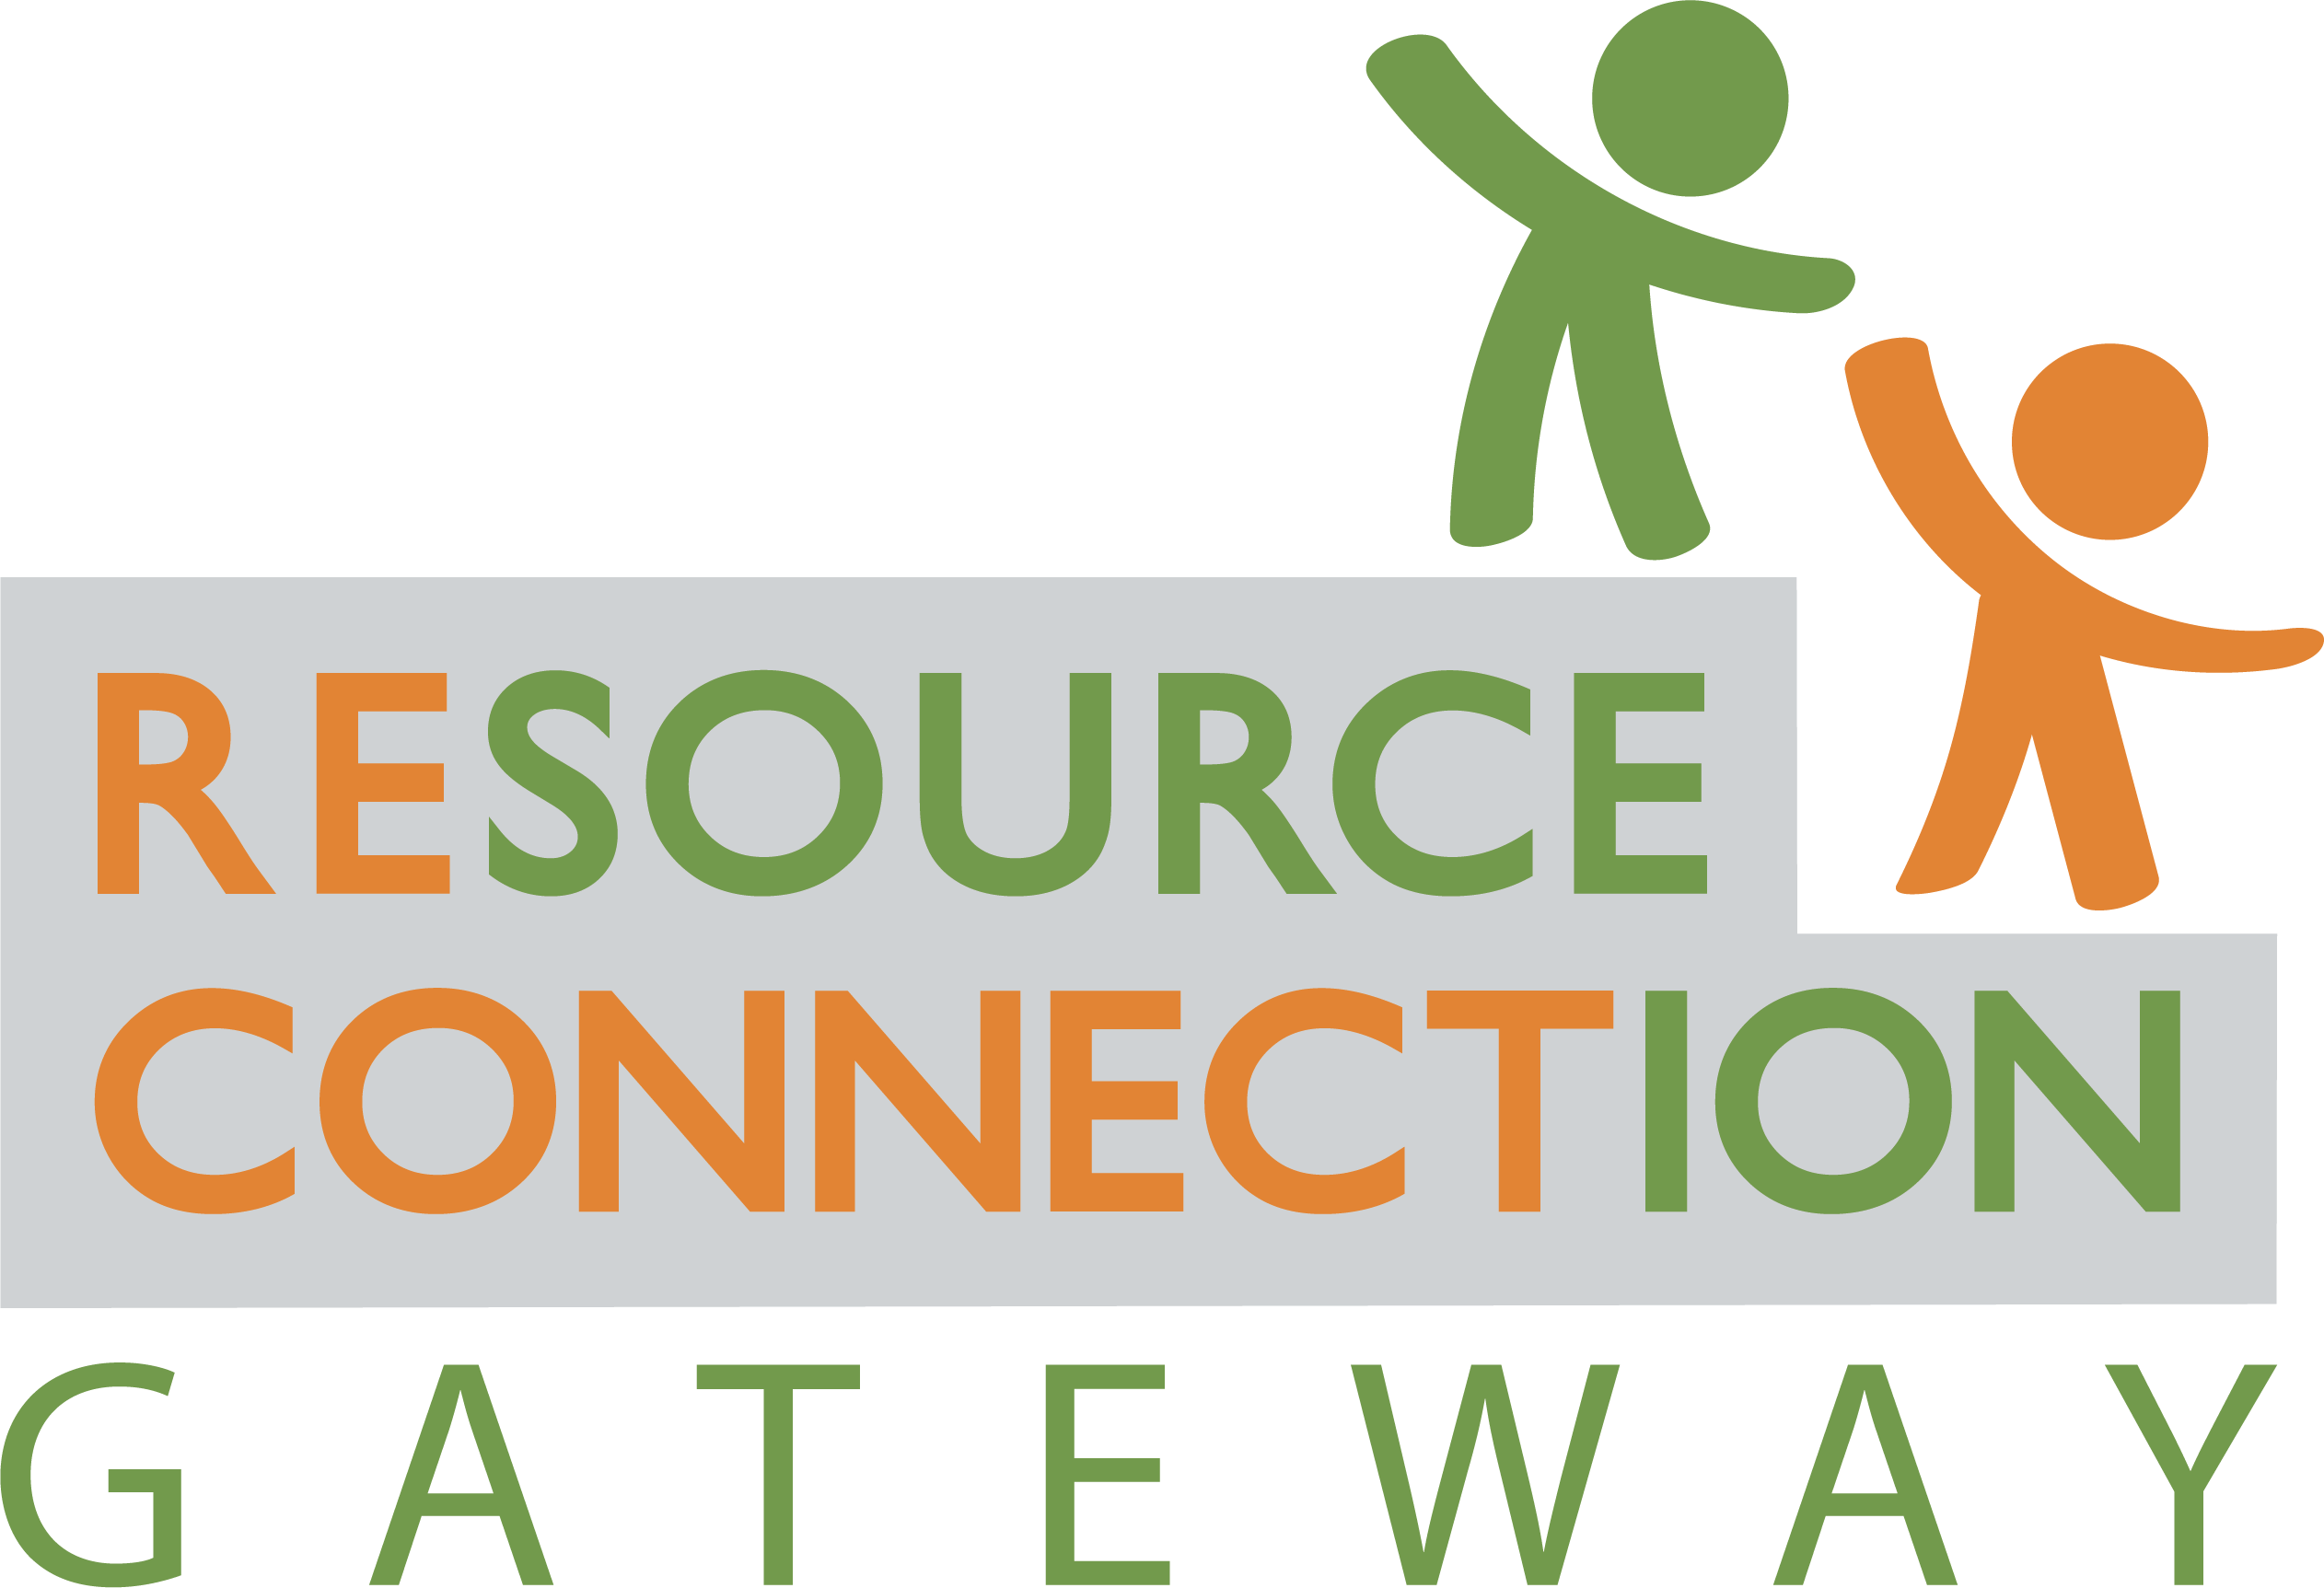 Resource Connection Gateway